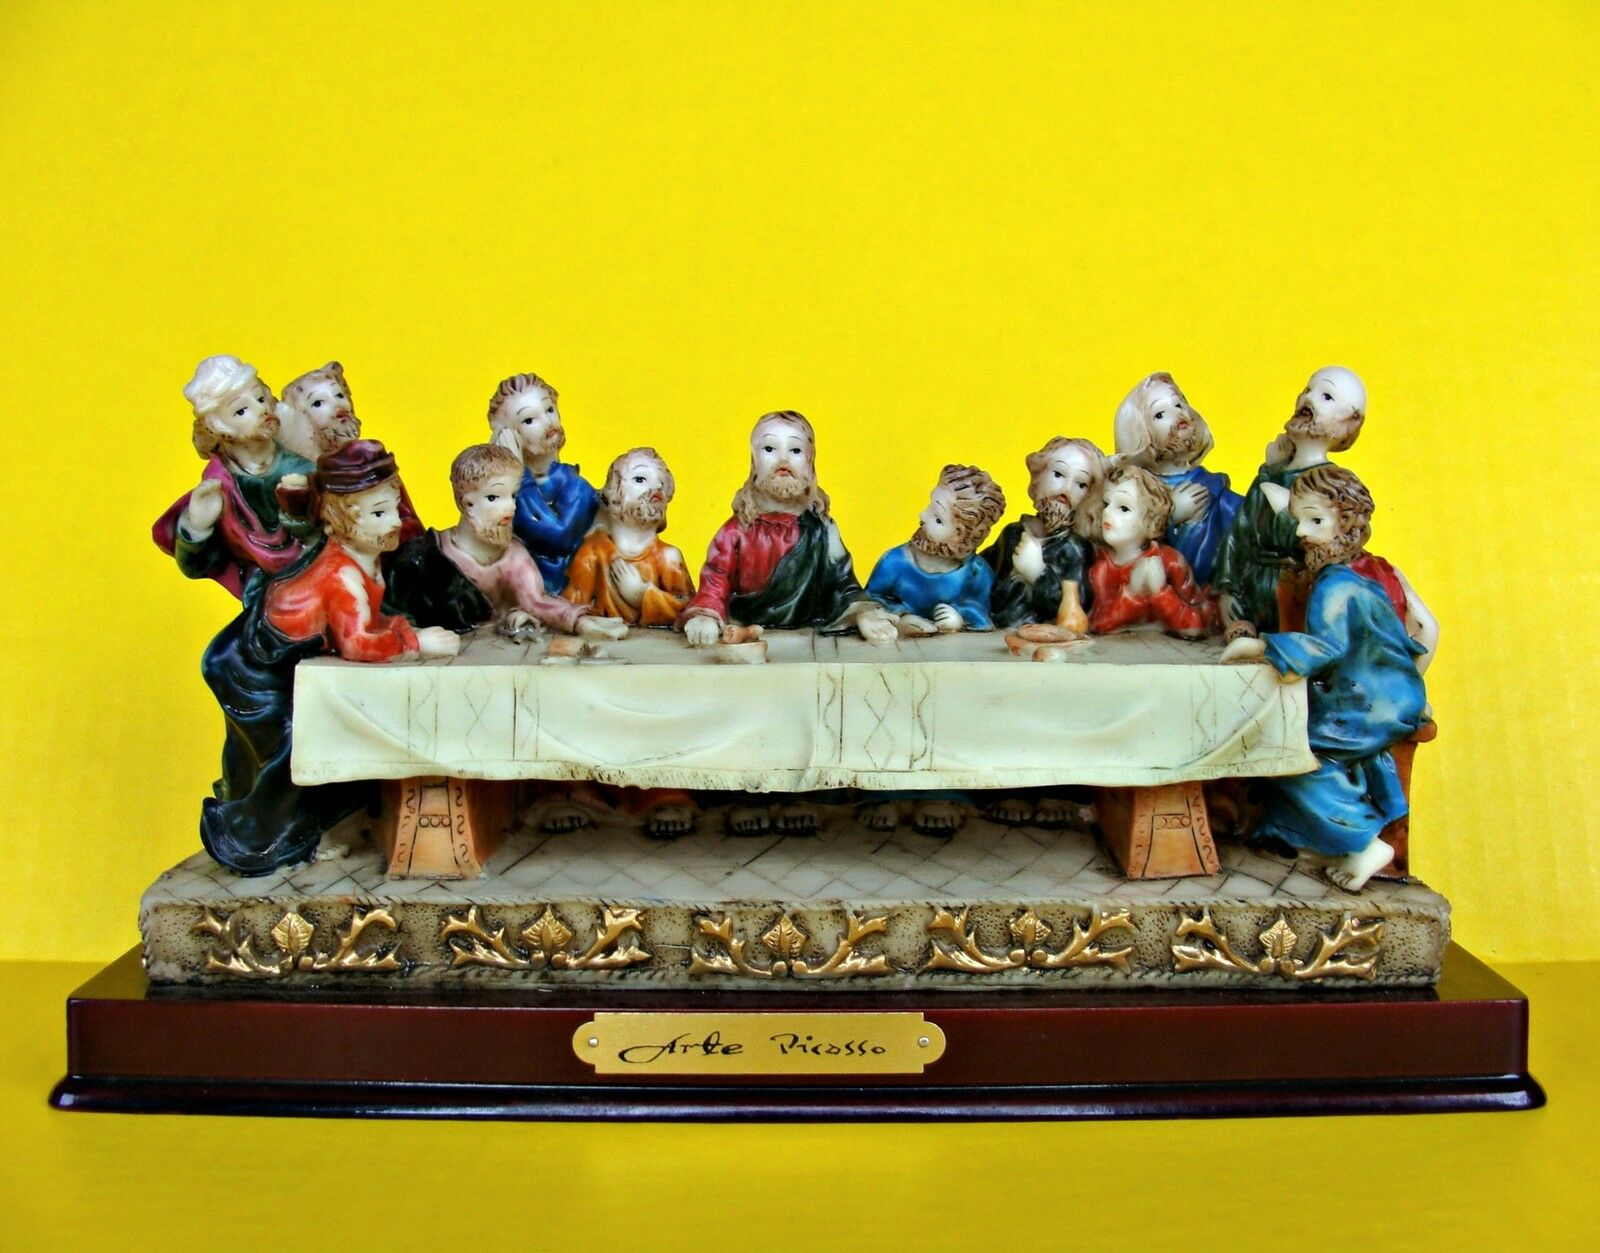 The Lord S Last Supper Statue Figures Jesus Christ Apostles Meal ...